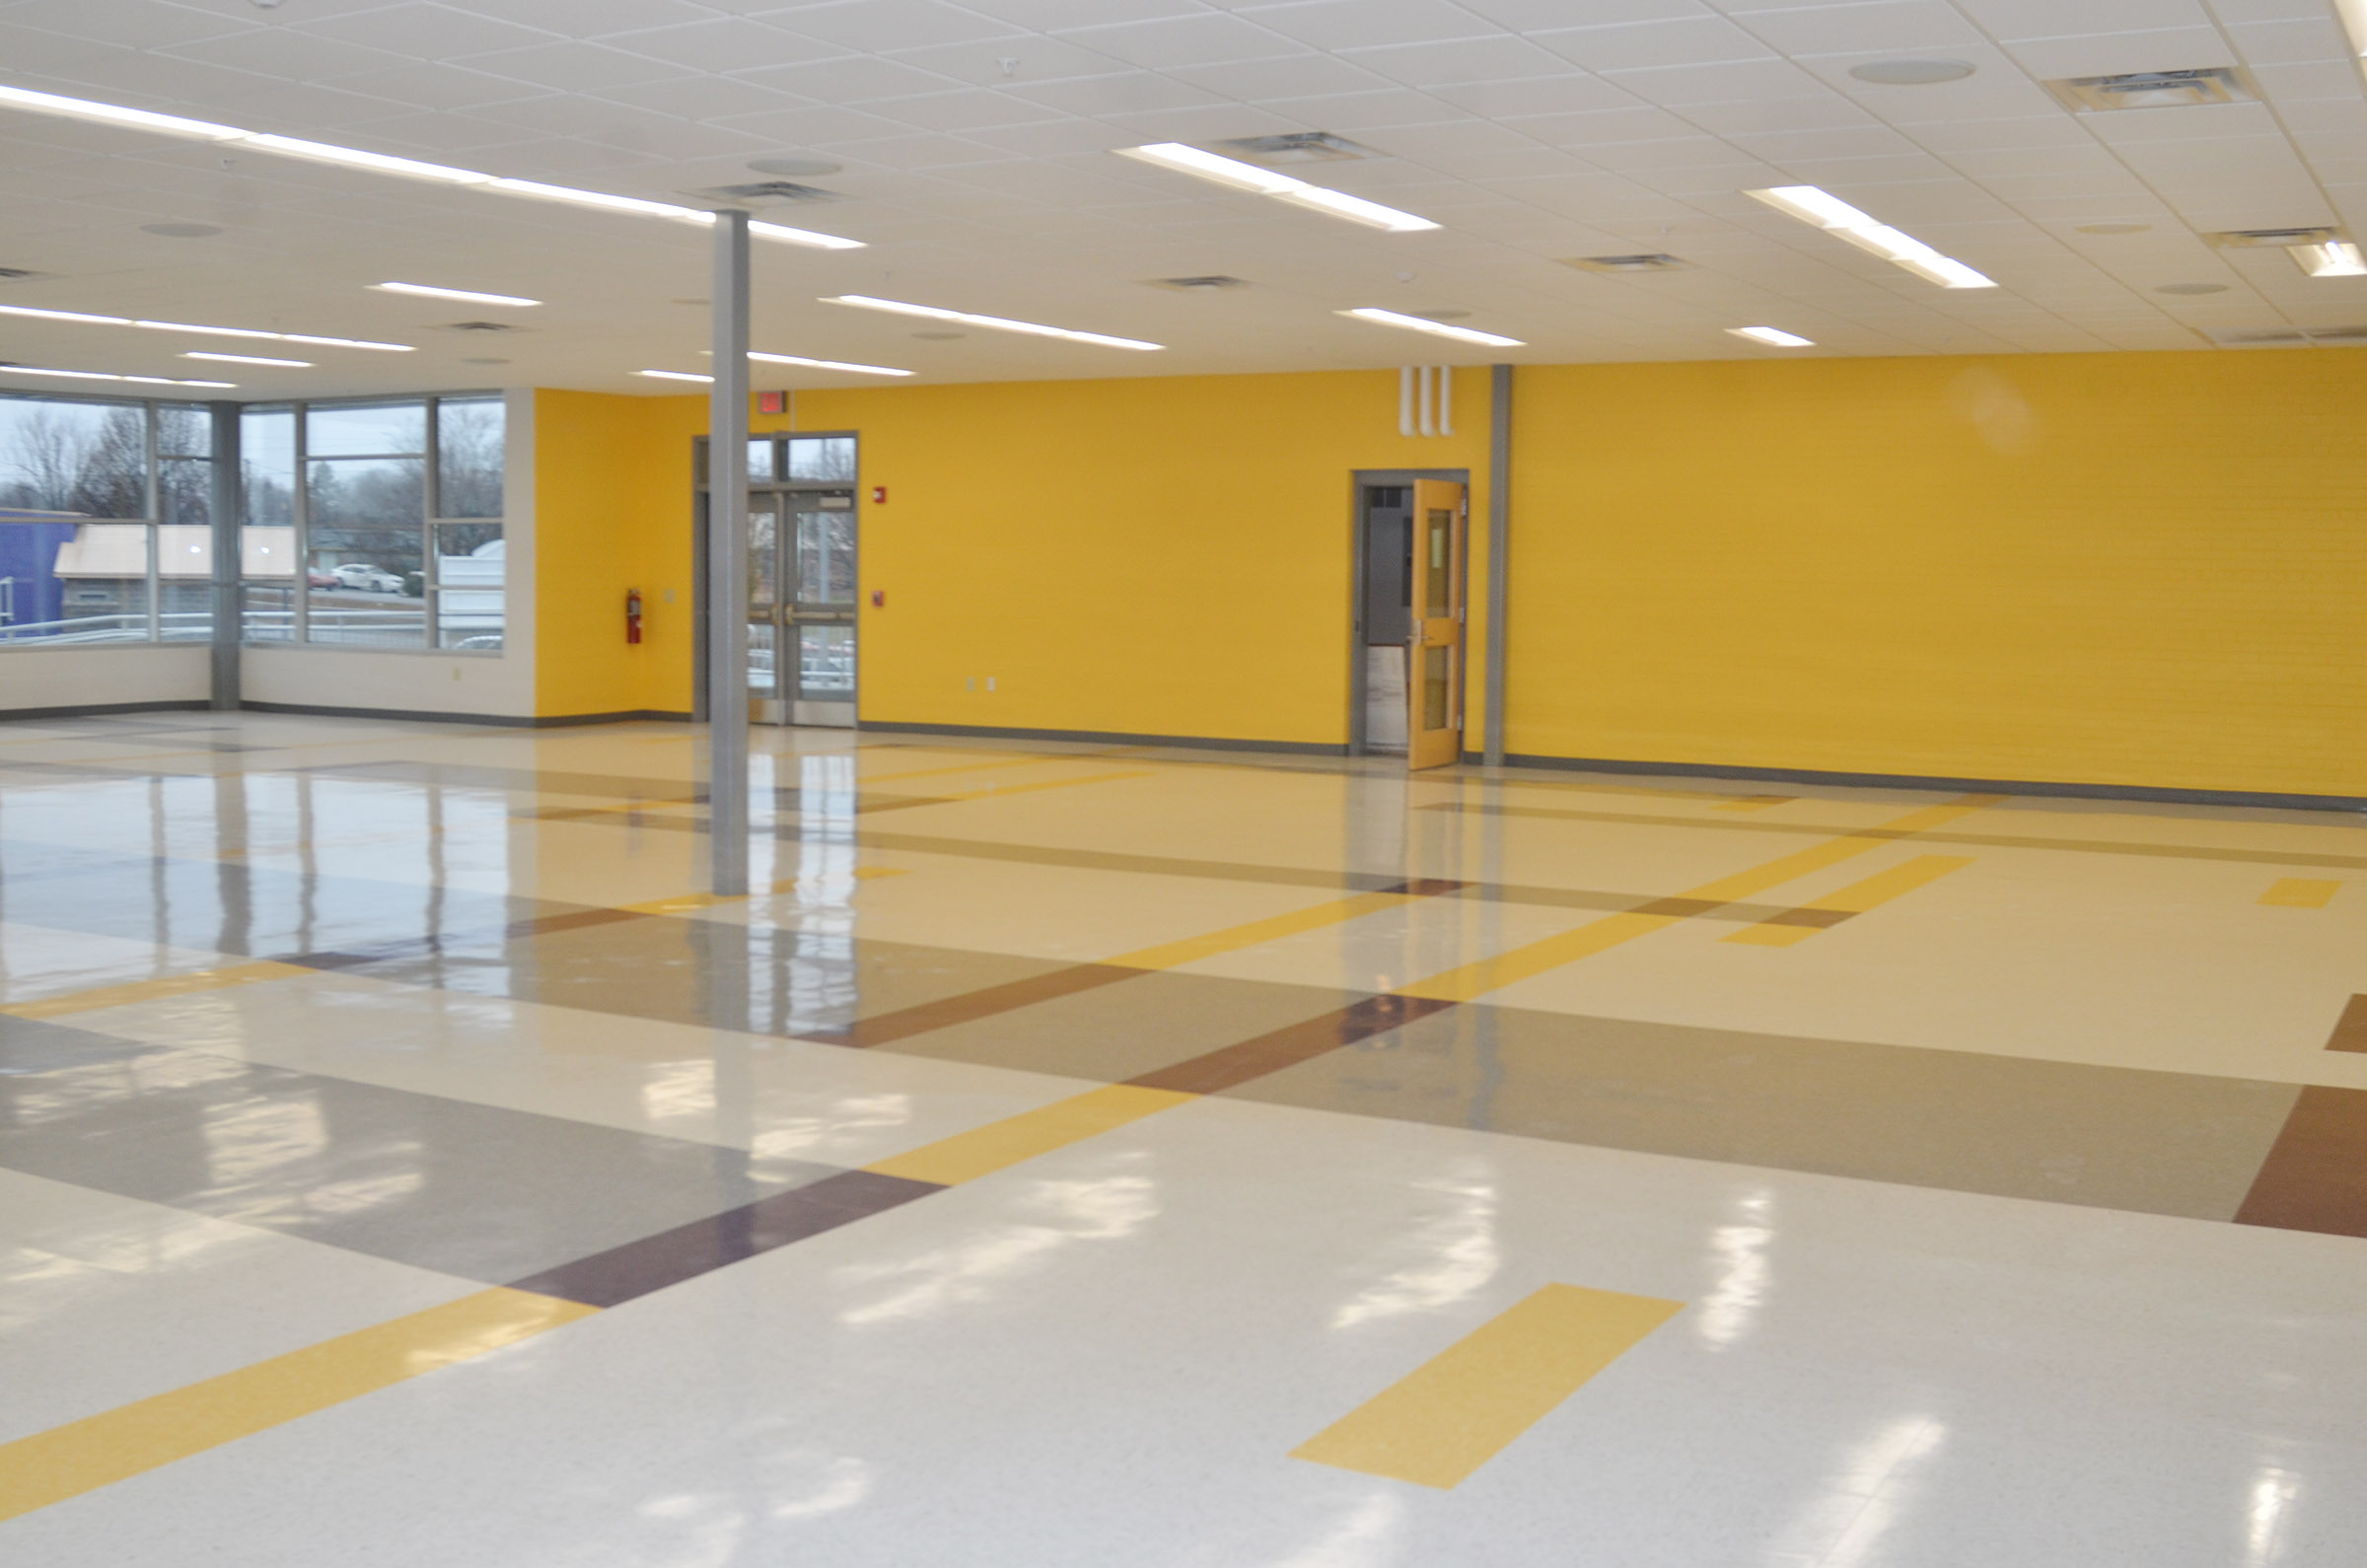 The new CES cafeteria will be open soon.